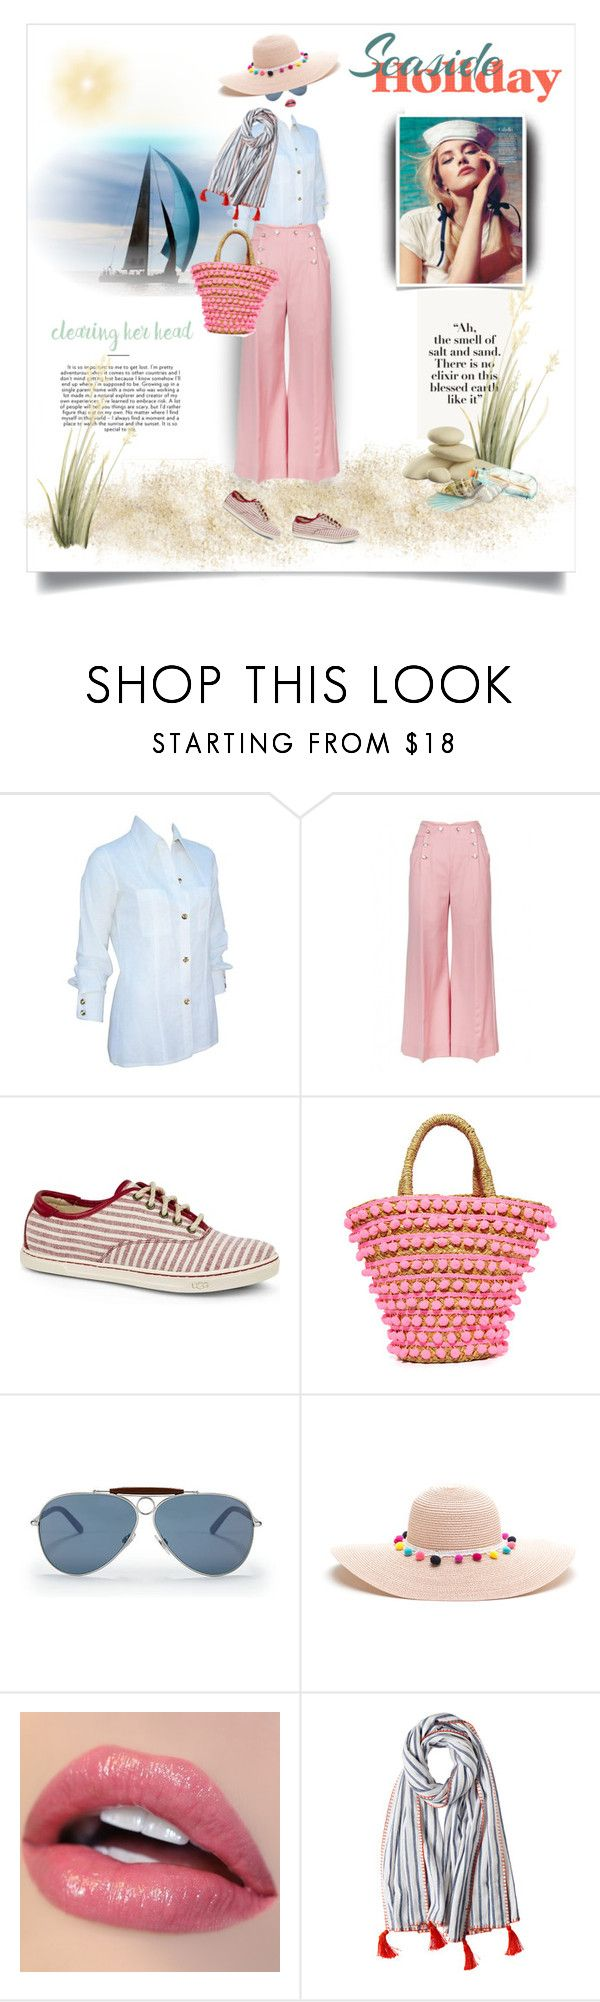 """""""A Nautical Look"""" by onesweetthing ❤ liked on Polyvore featuring Gucci, Temperley London, UGG Australia, Mystique, Ralph Lauren, Calypso St. Barth, Nautical, gucci, TemperleyLondon and uggaustrailia"""